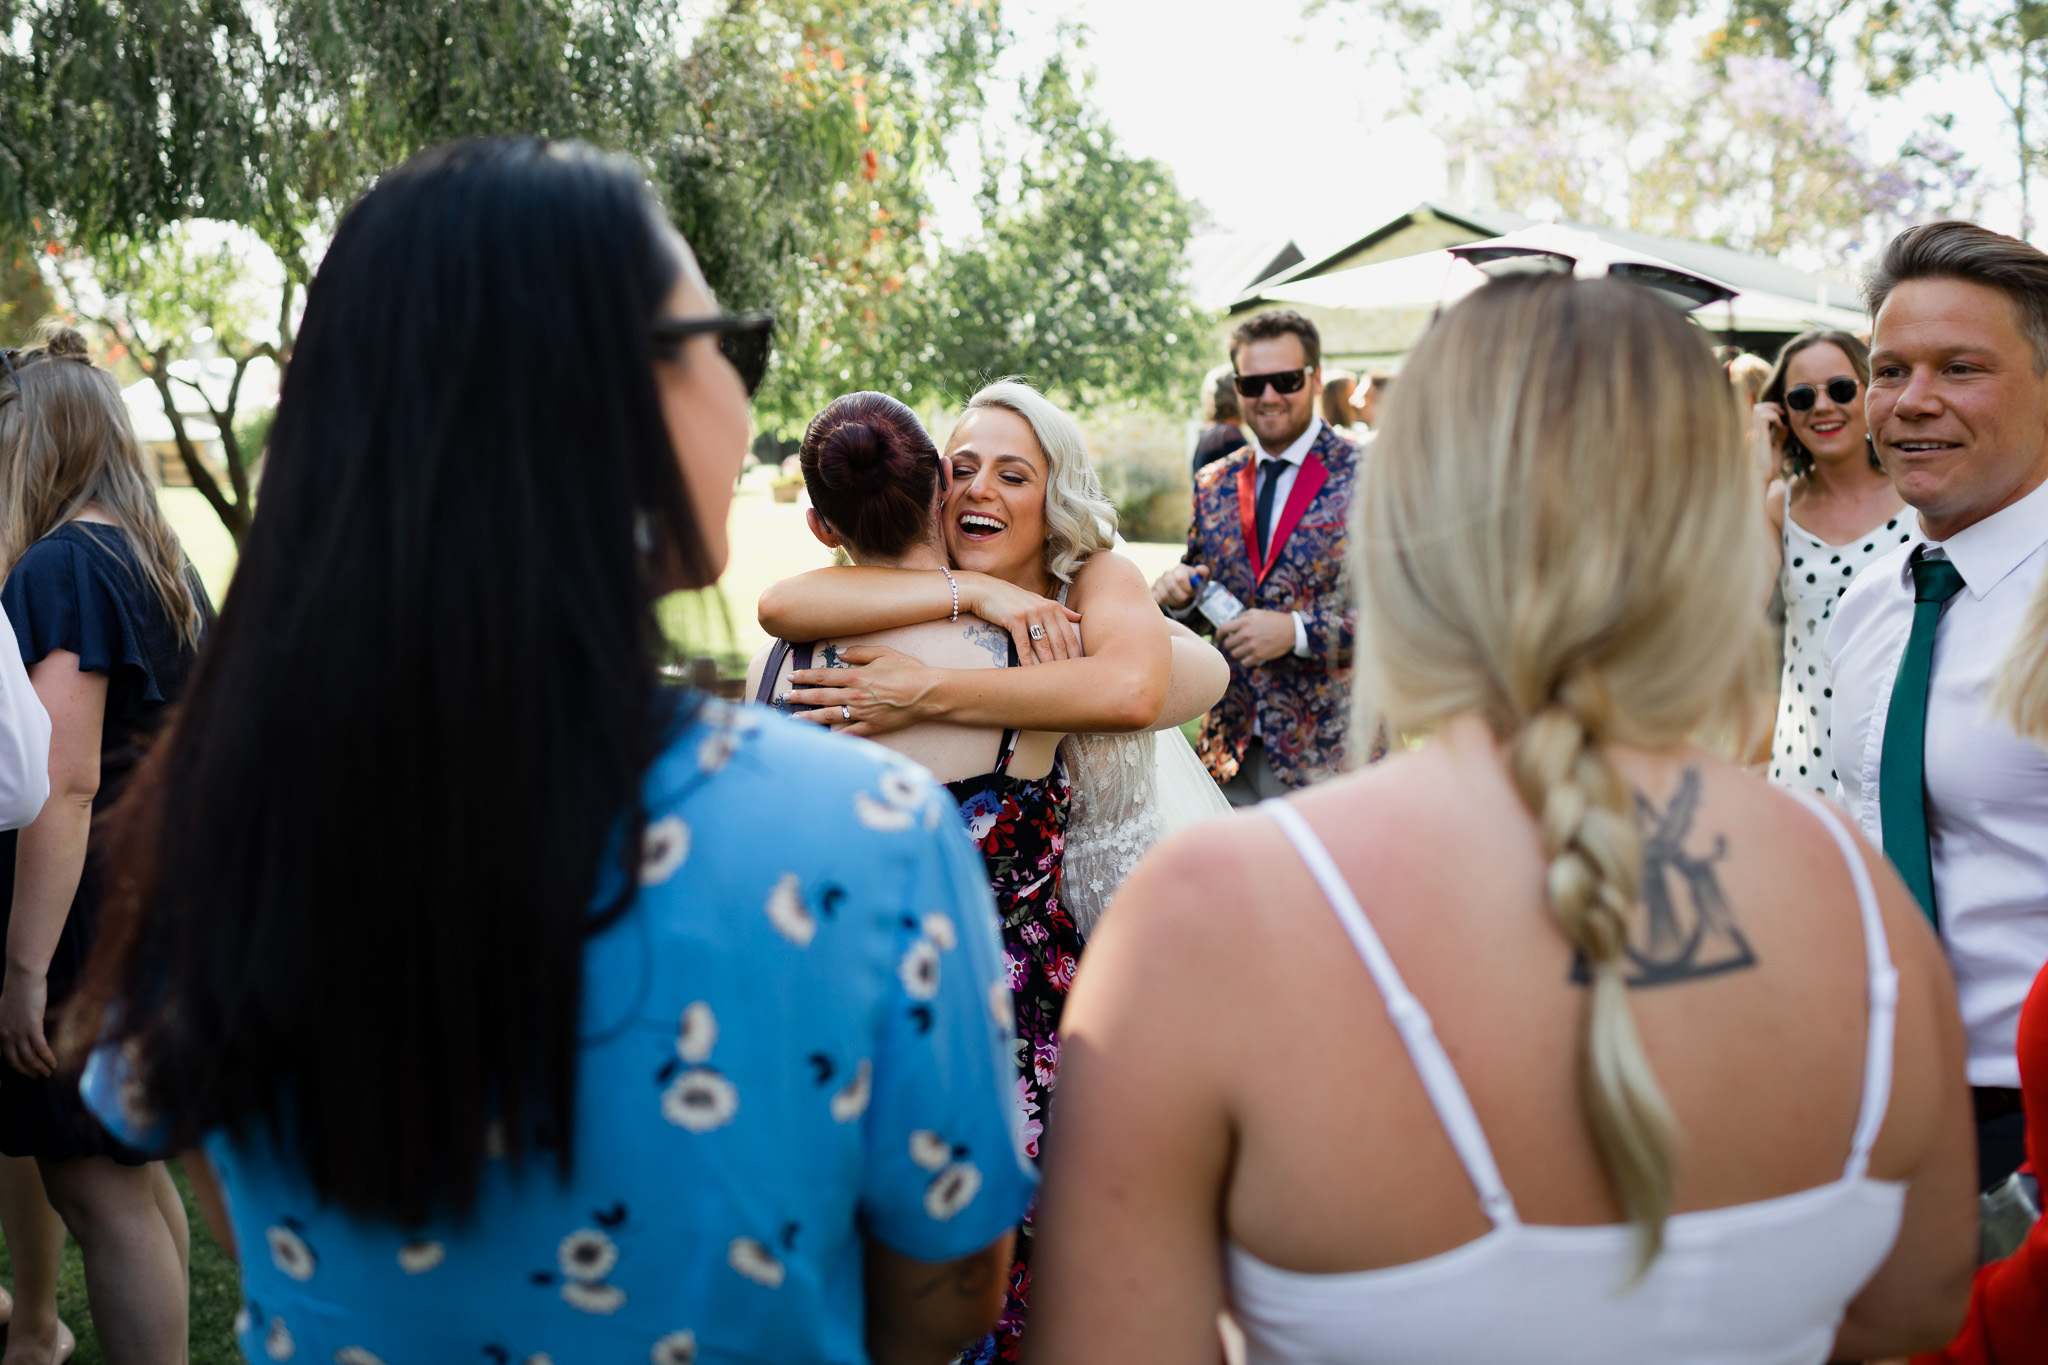 smiling blonde bride hugging friend during congratulations after wedding ceremony, while friends look on